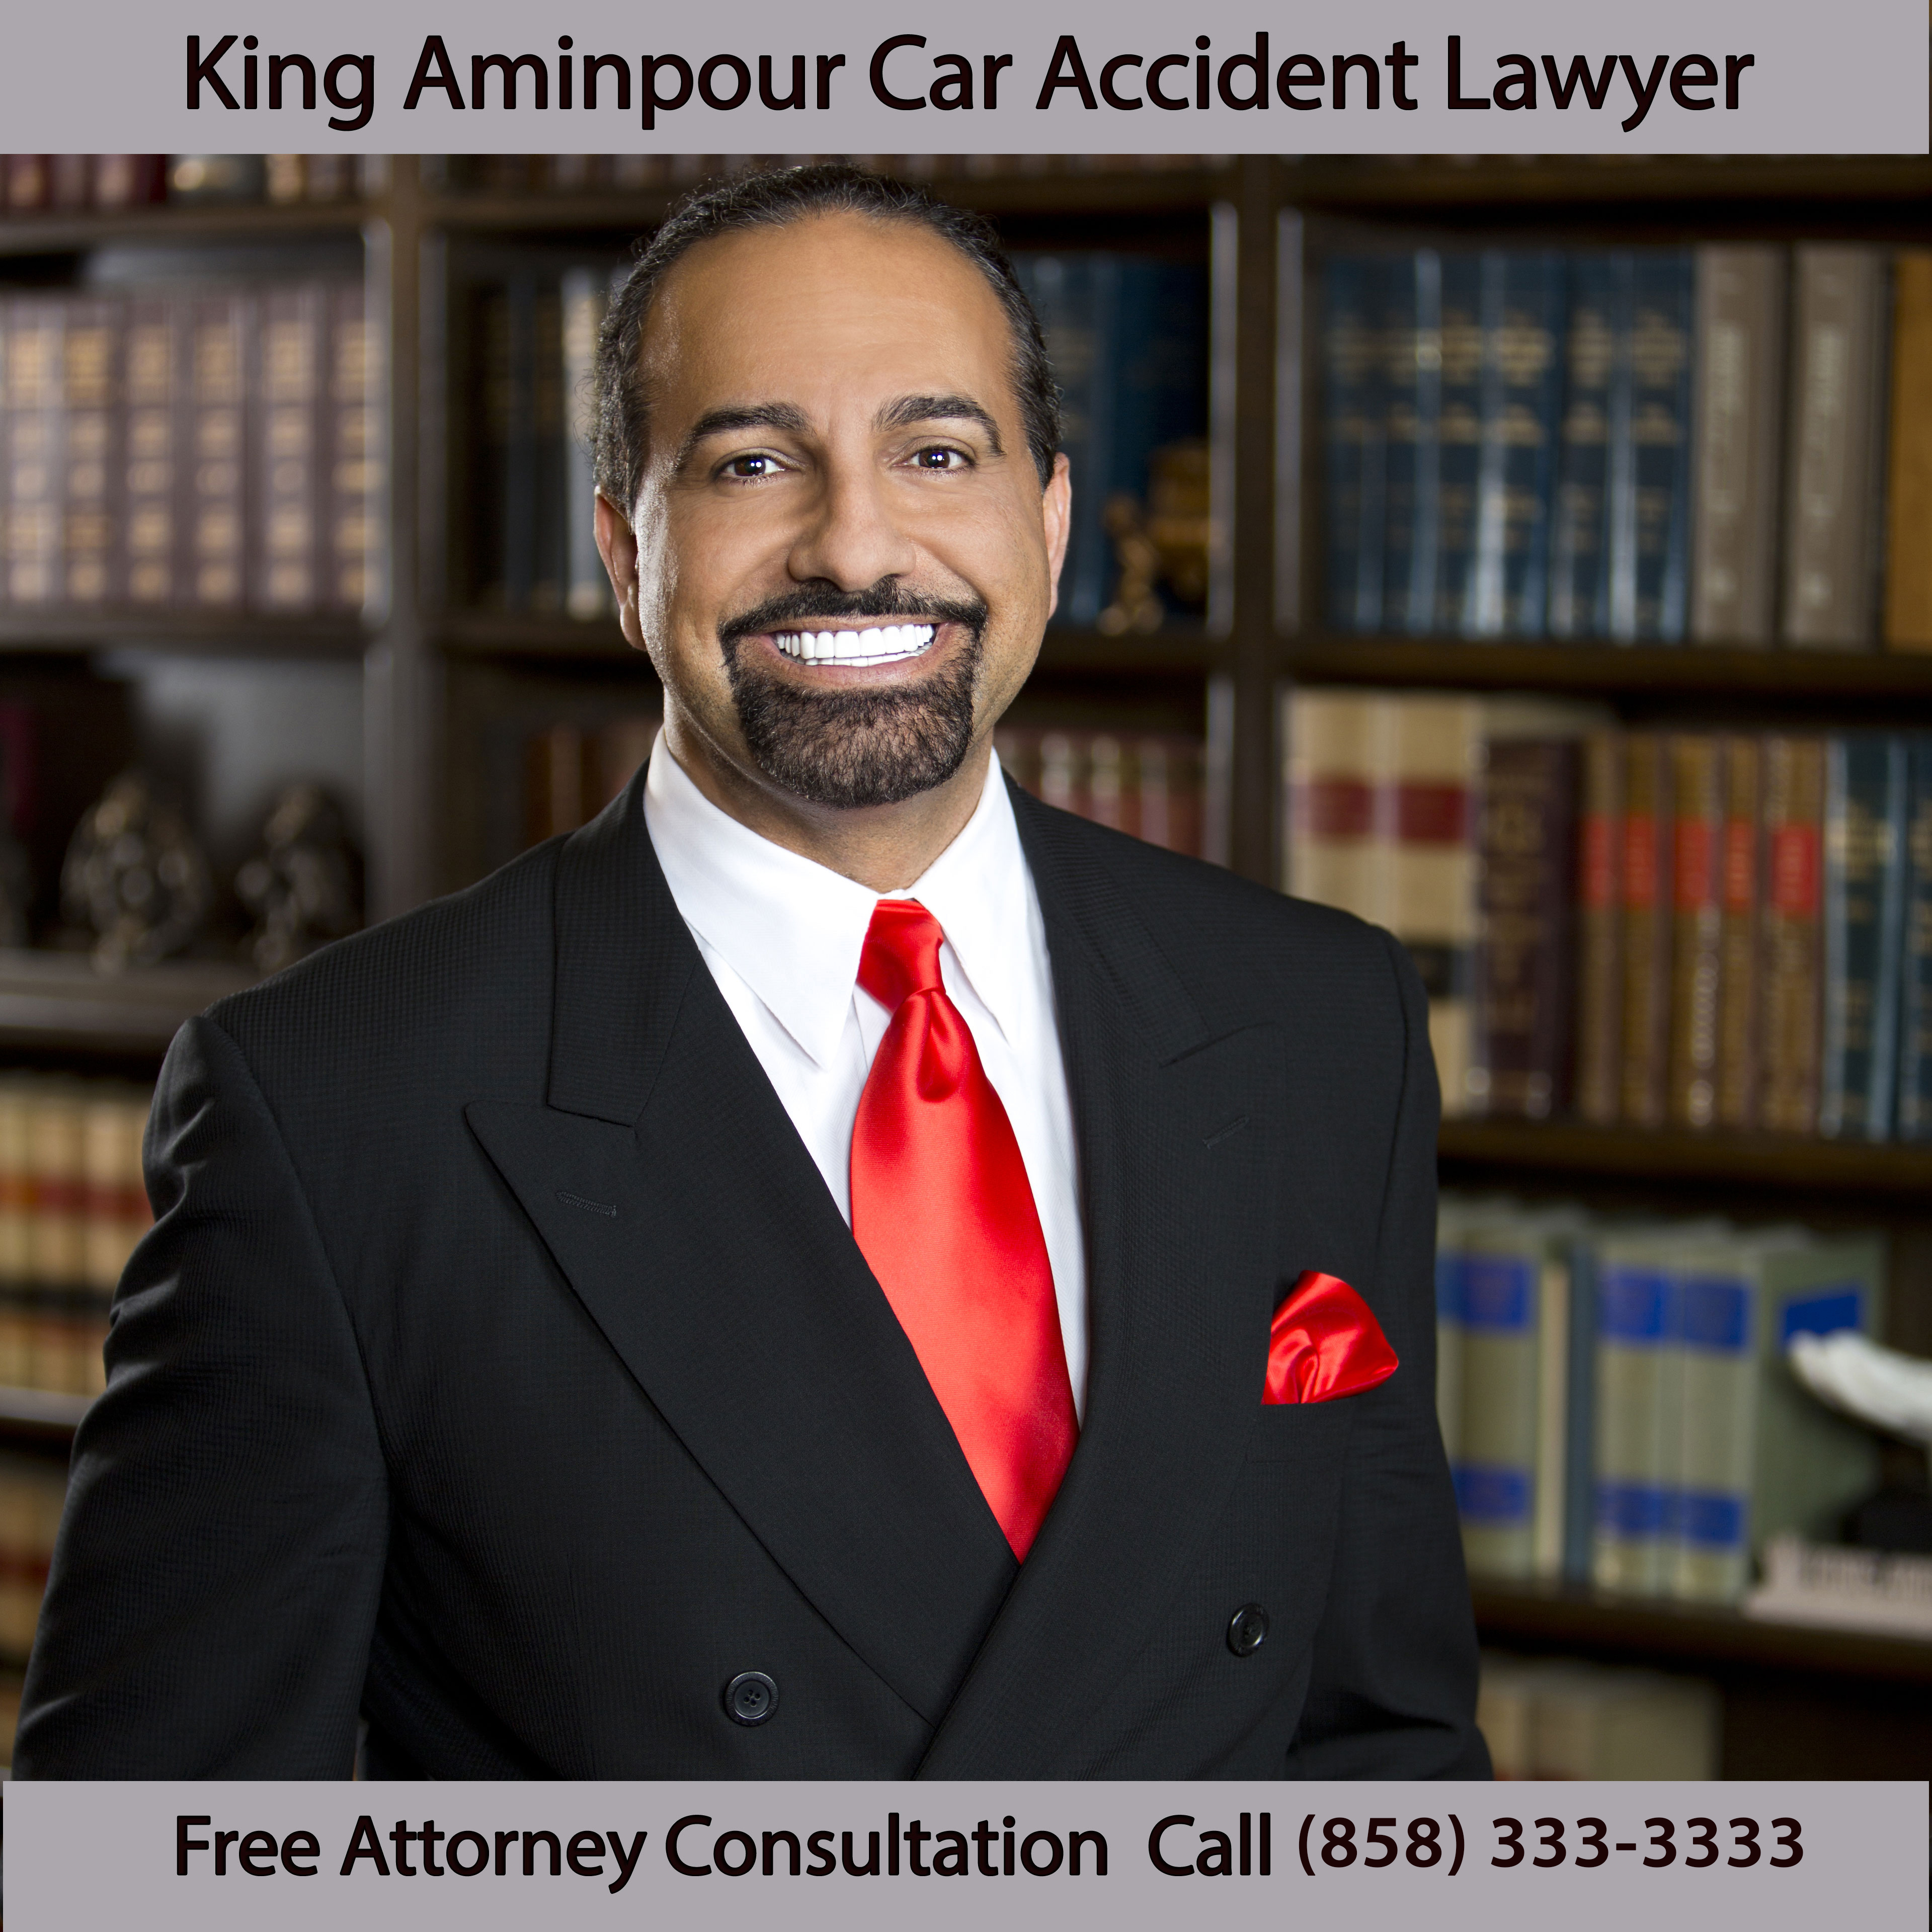 King Aminpour Car Accident Lawyer Coupons near me in San Diego  8coupons